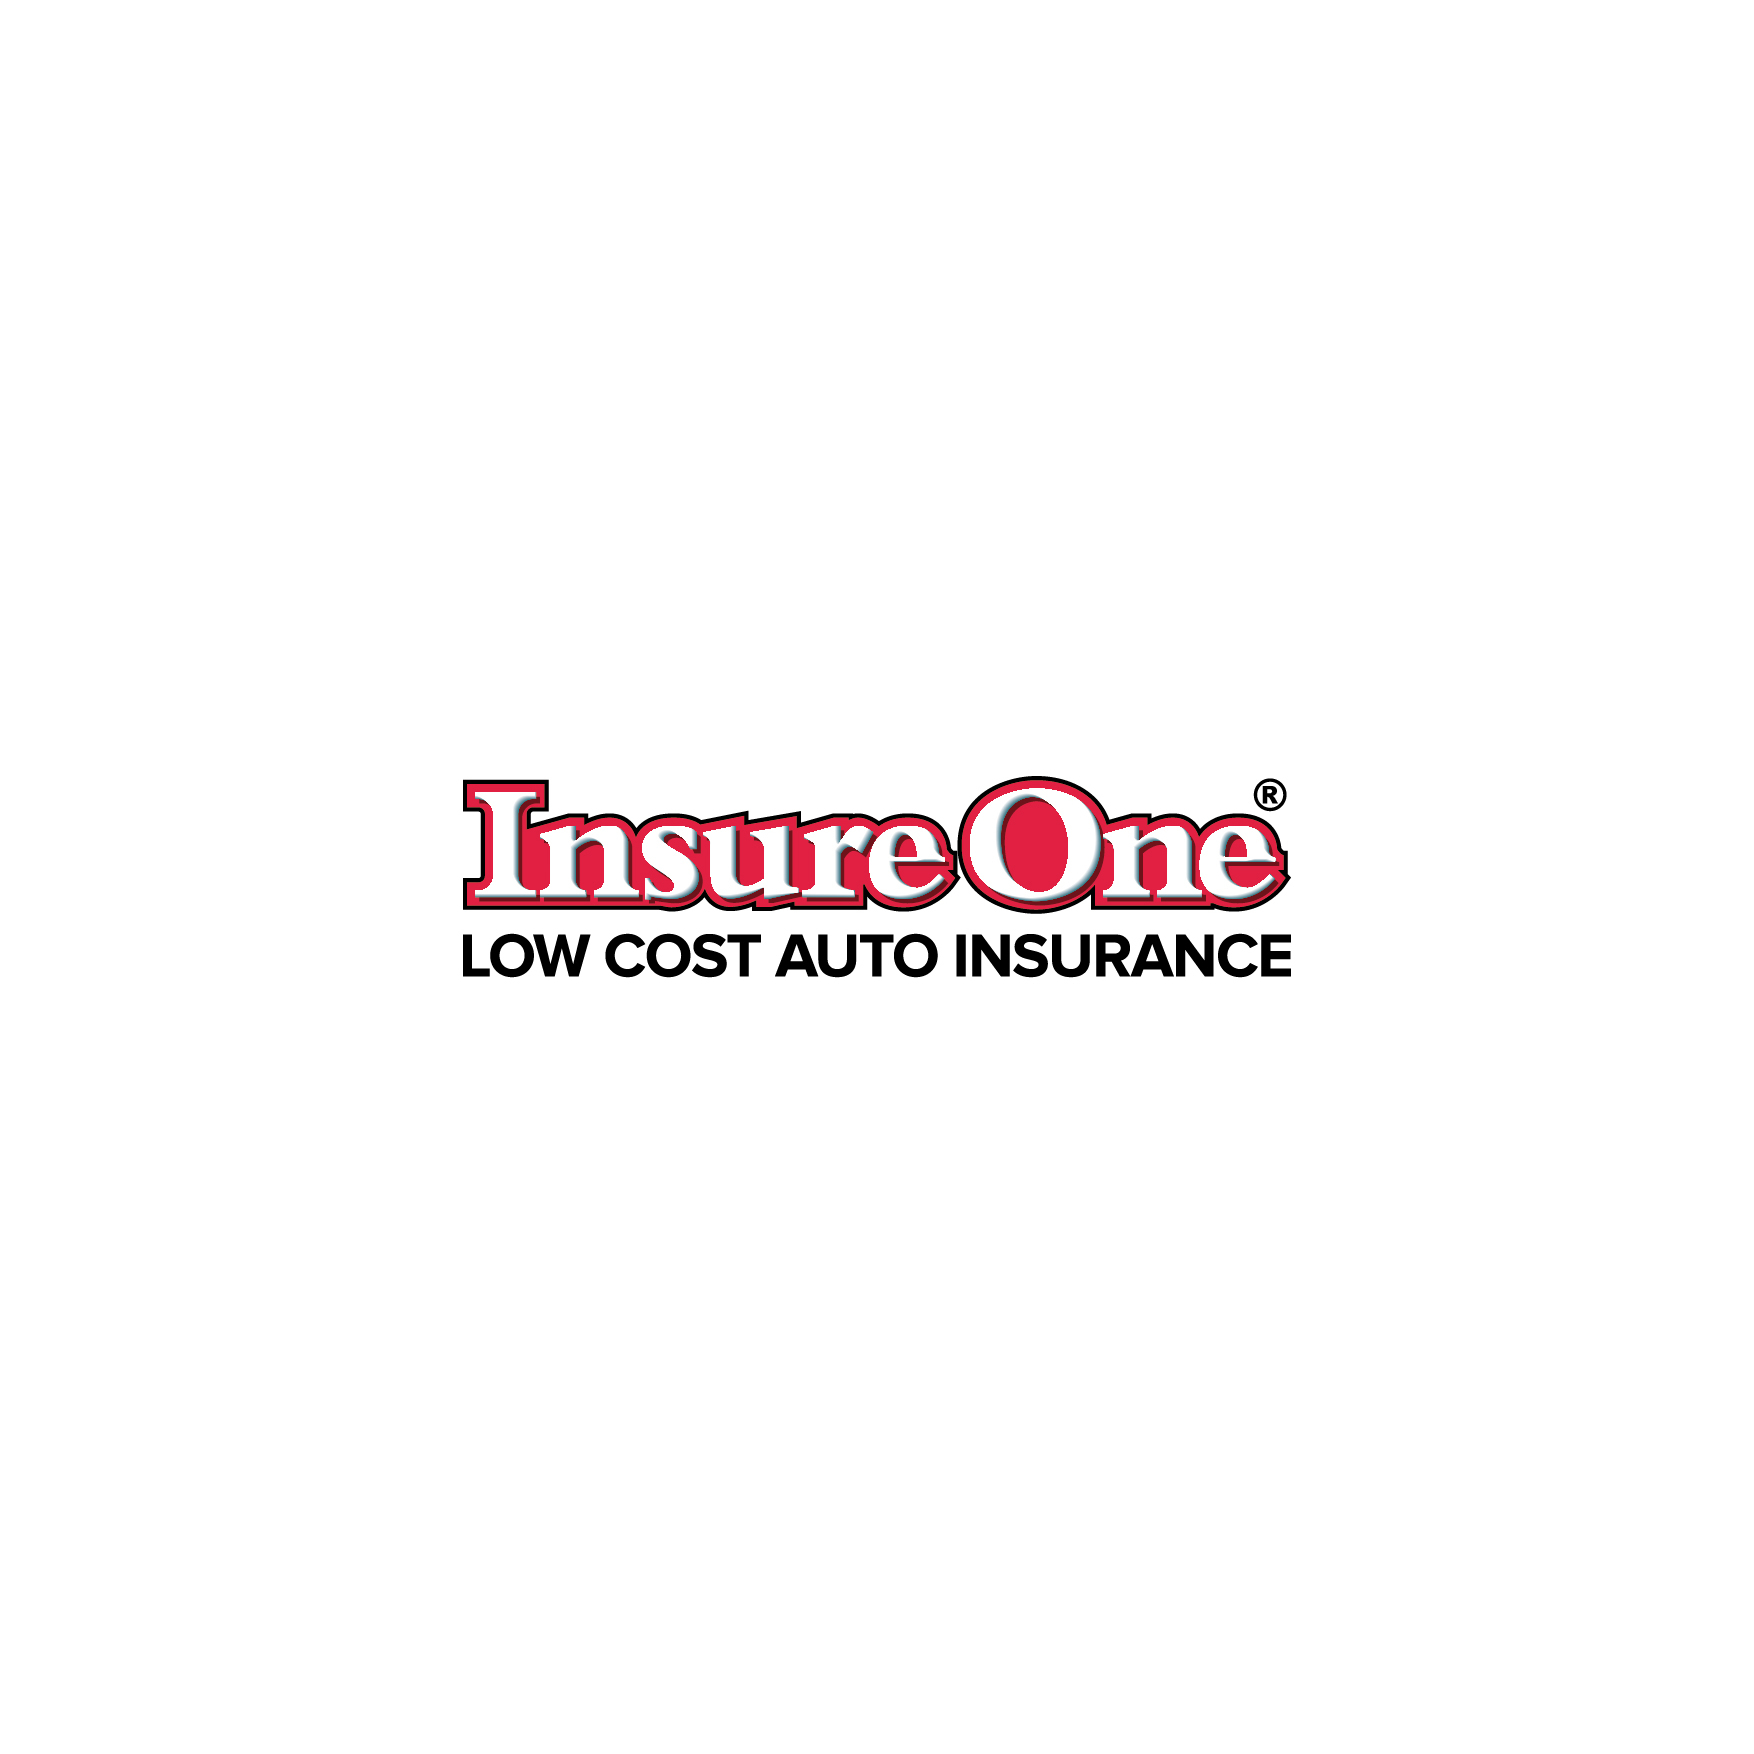 InsureOne Insurance Agency